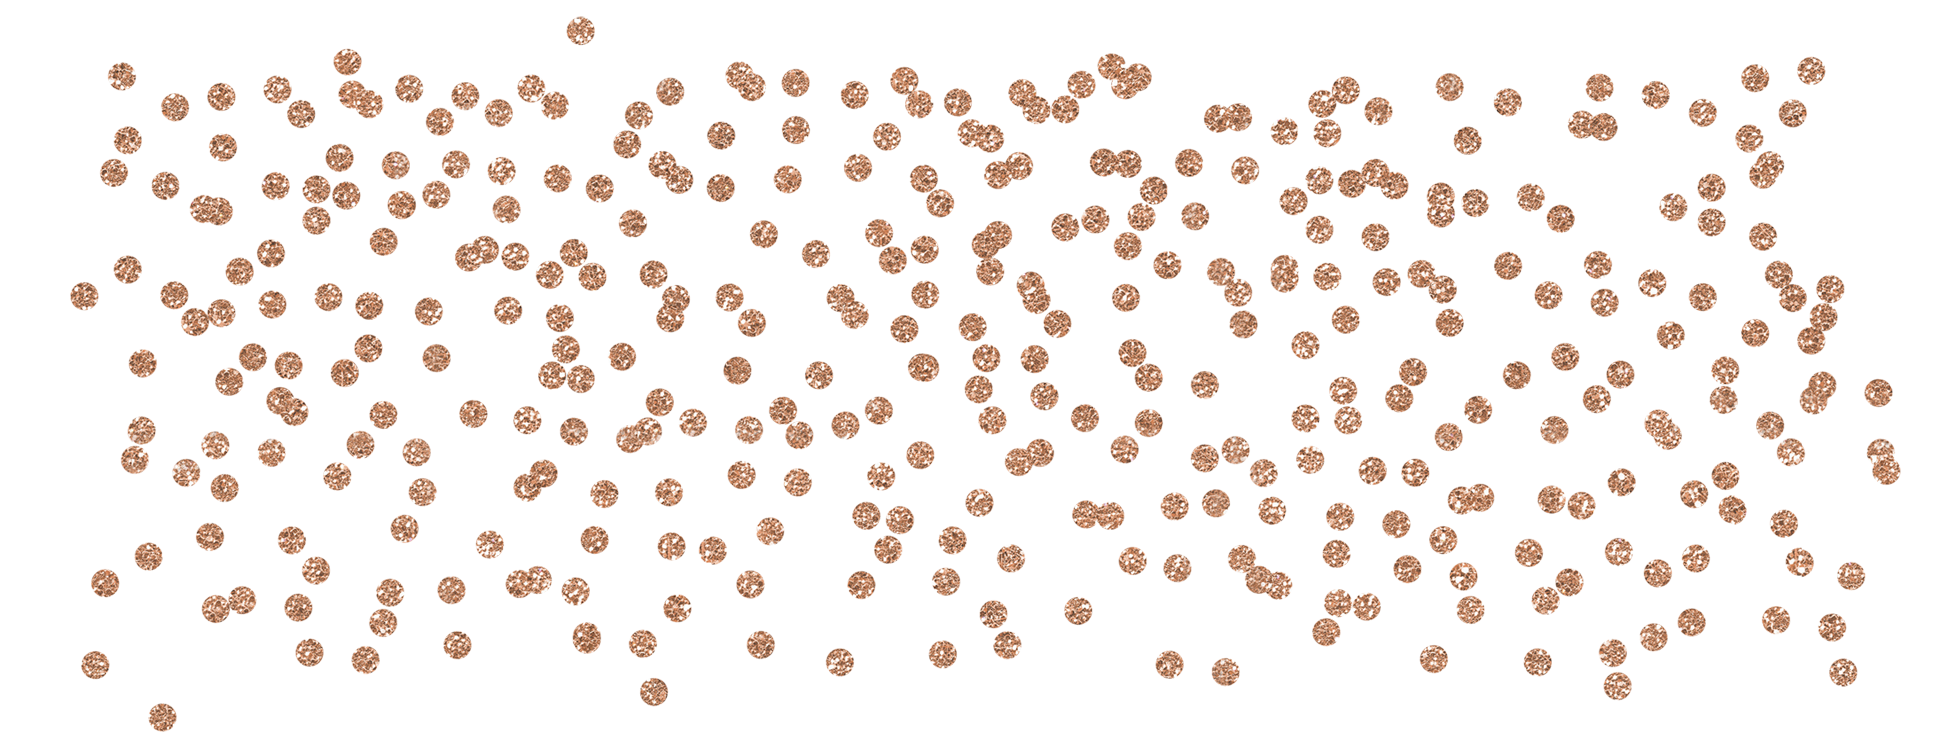 Background overlays png. Download free gold confetti